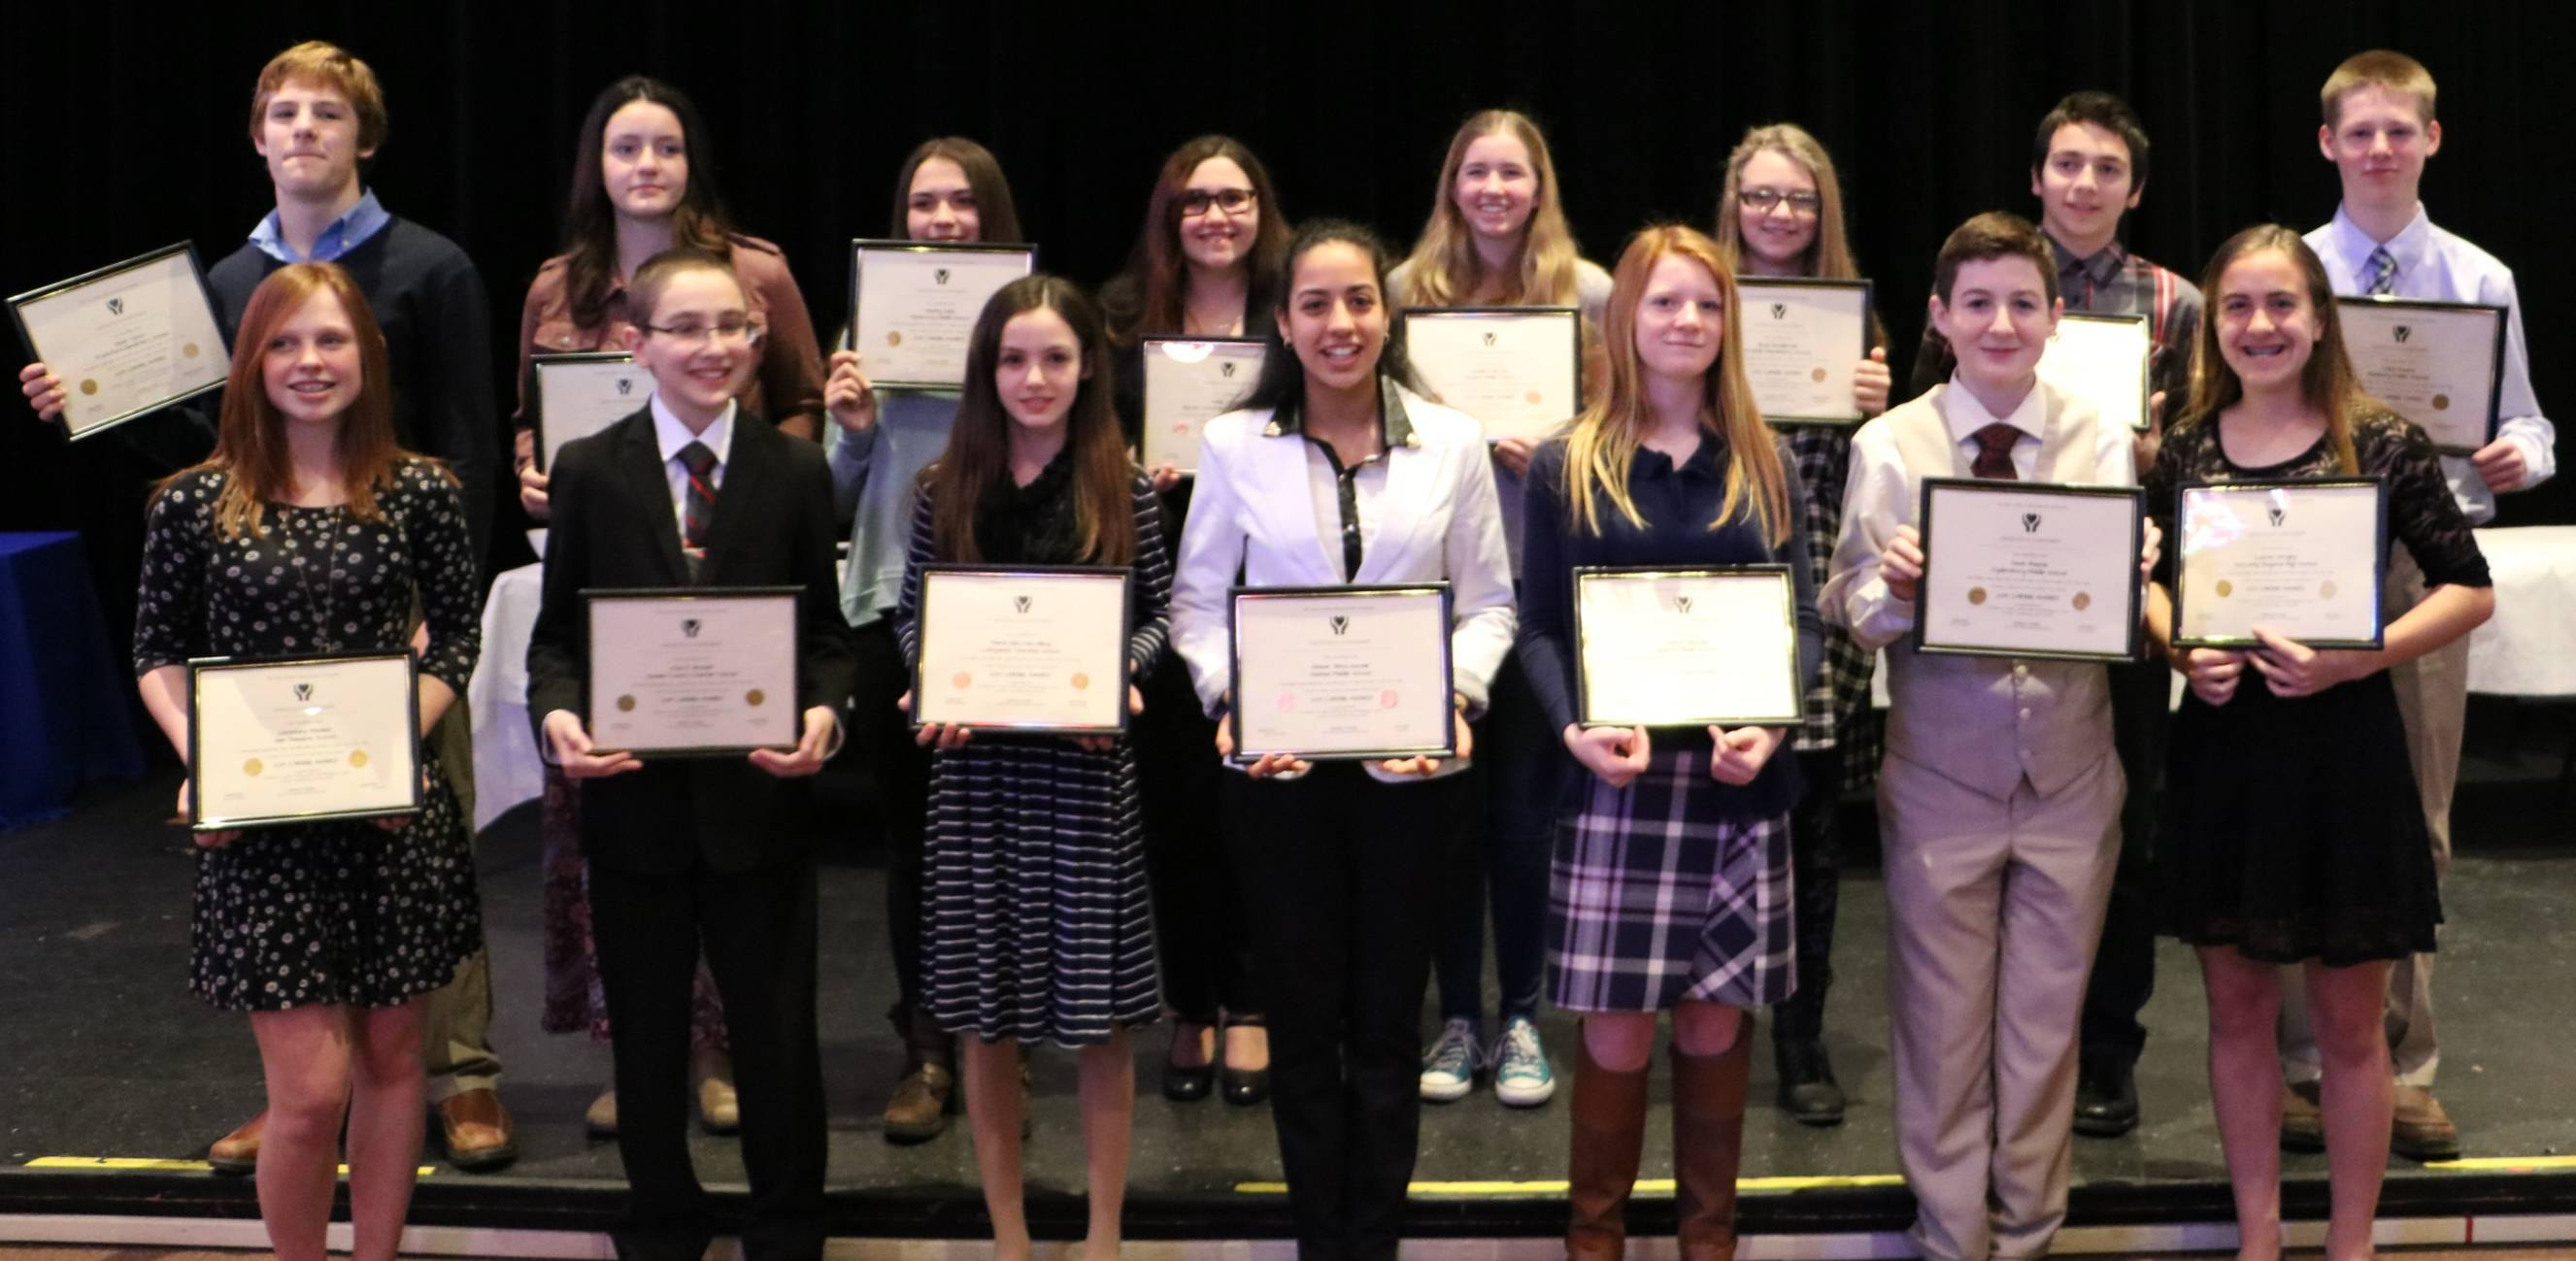 418cfd3c7bba9186dadc_Middle_School_Caring_Awards.jpg